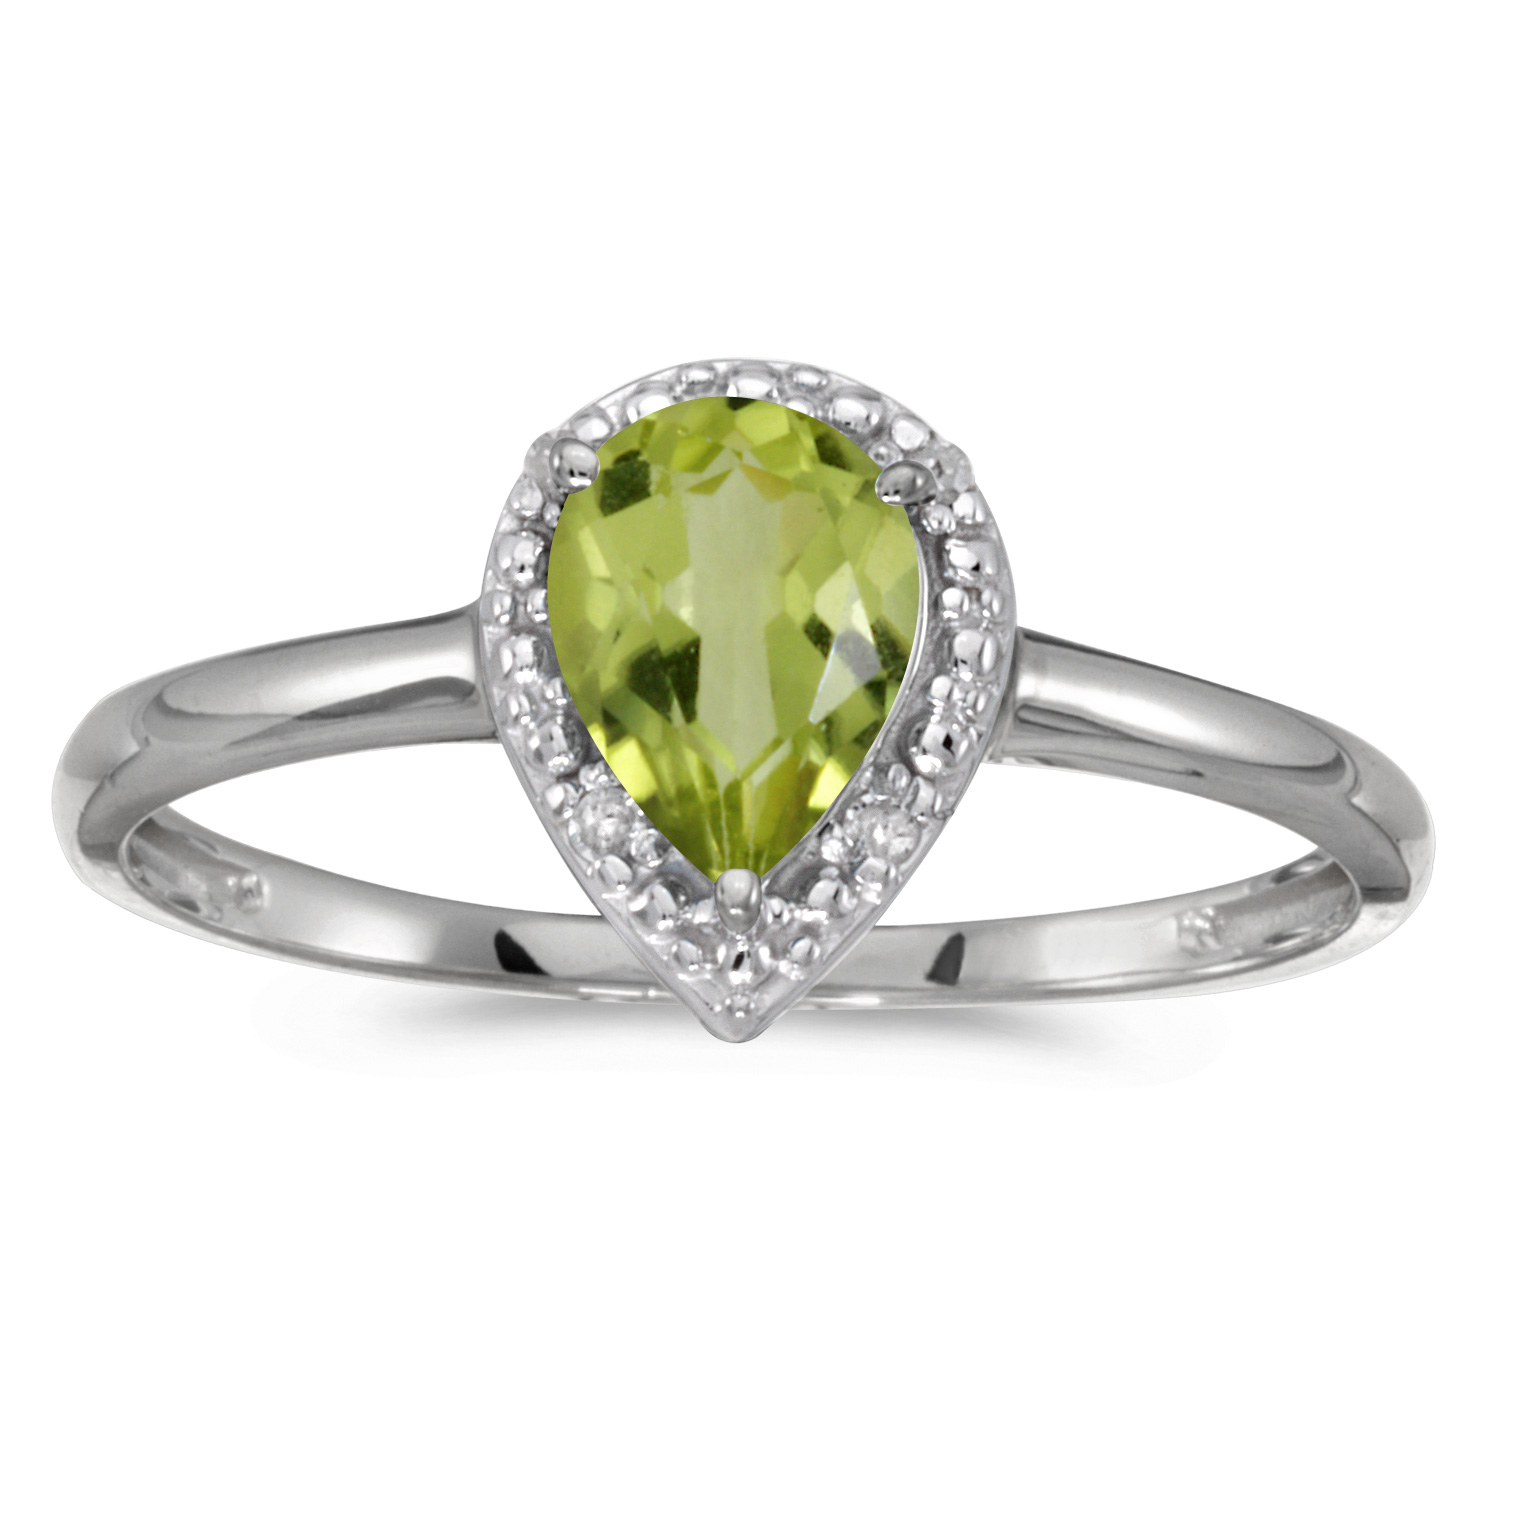 10k White Gold Pear Peridot And Diamond Ring by